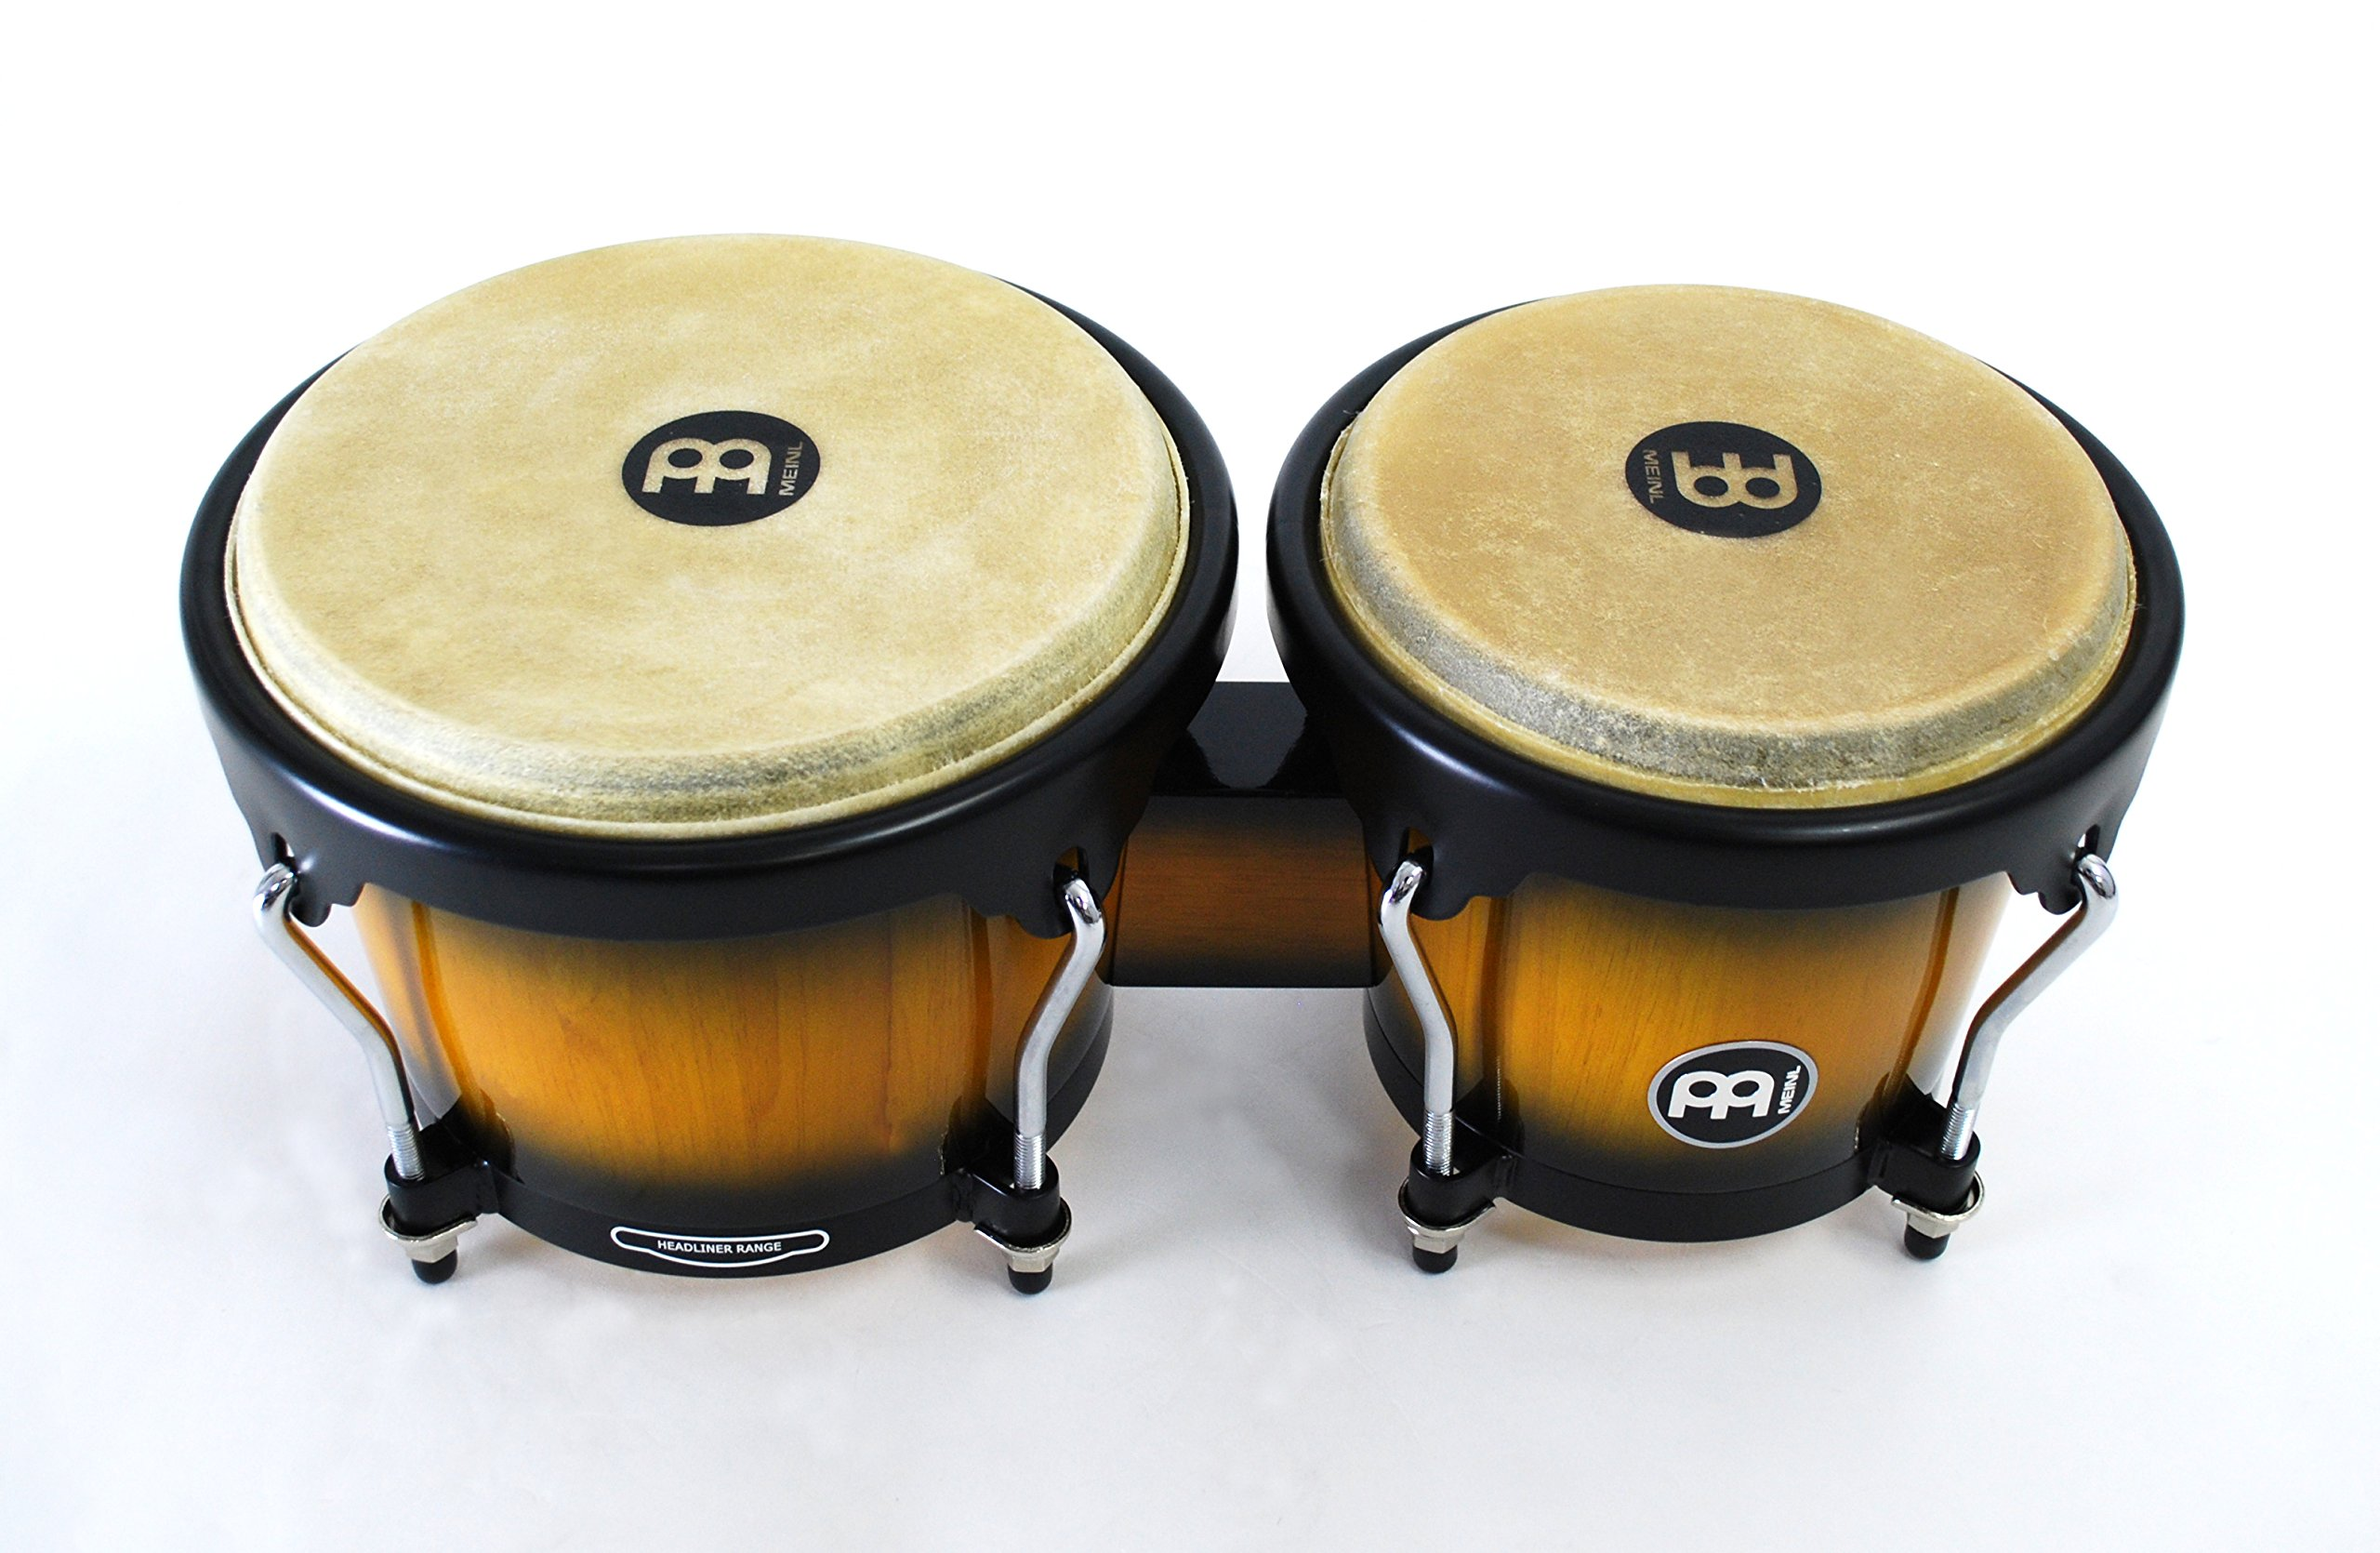 Meinl Percussion Bongos With Hardwood Shells - NOT MADE IN CHINA - Vintage Sun burst Finish, Buffalo Skin Heads, 2-YEAR WARRANTY HB100VSB by Meinl Percussion (Image #3)